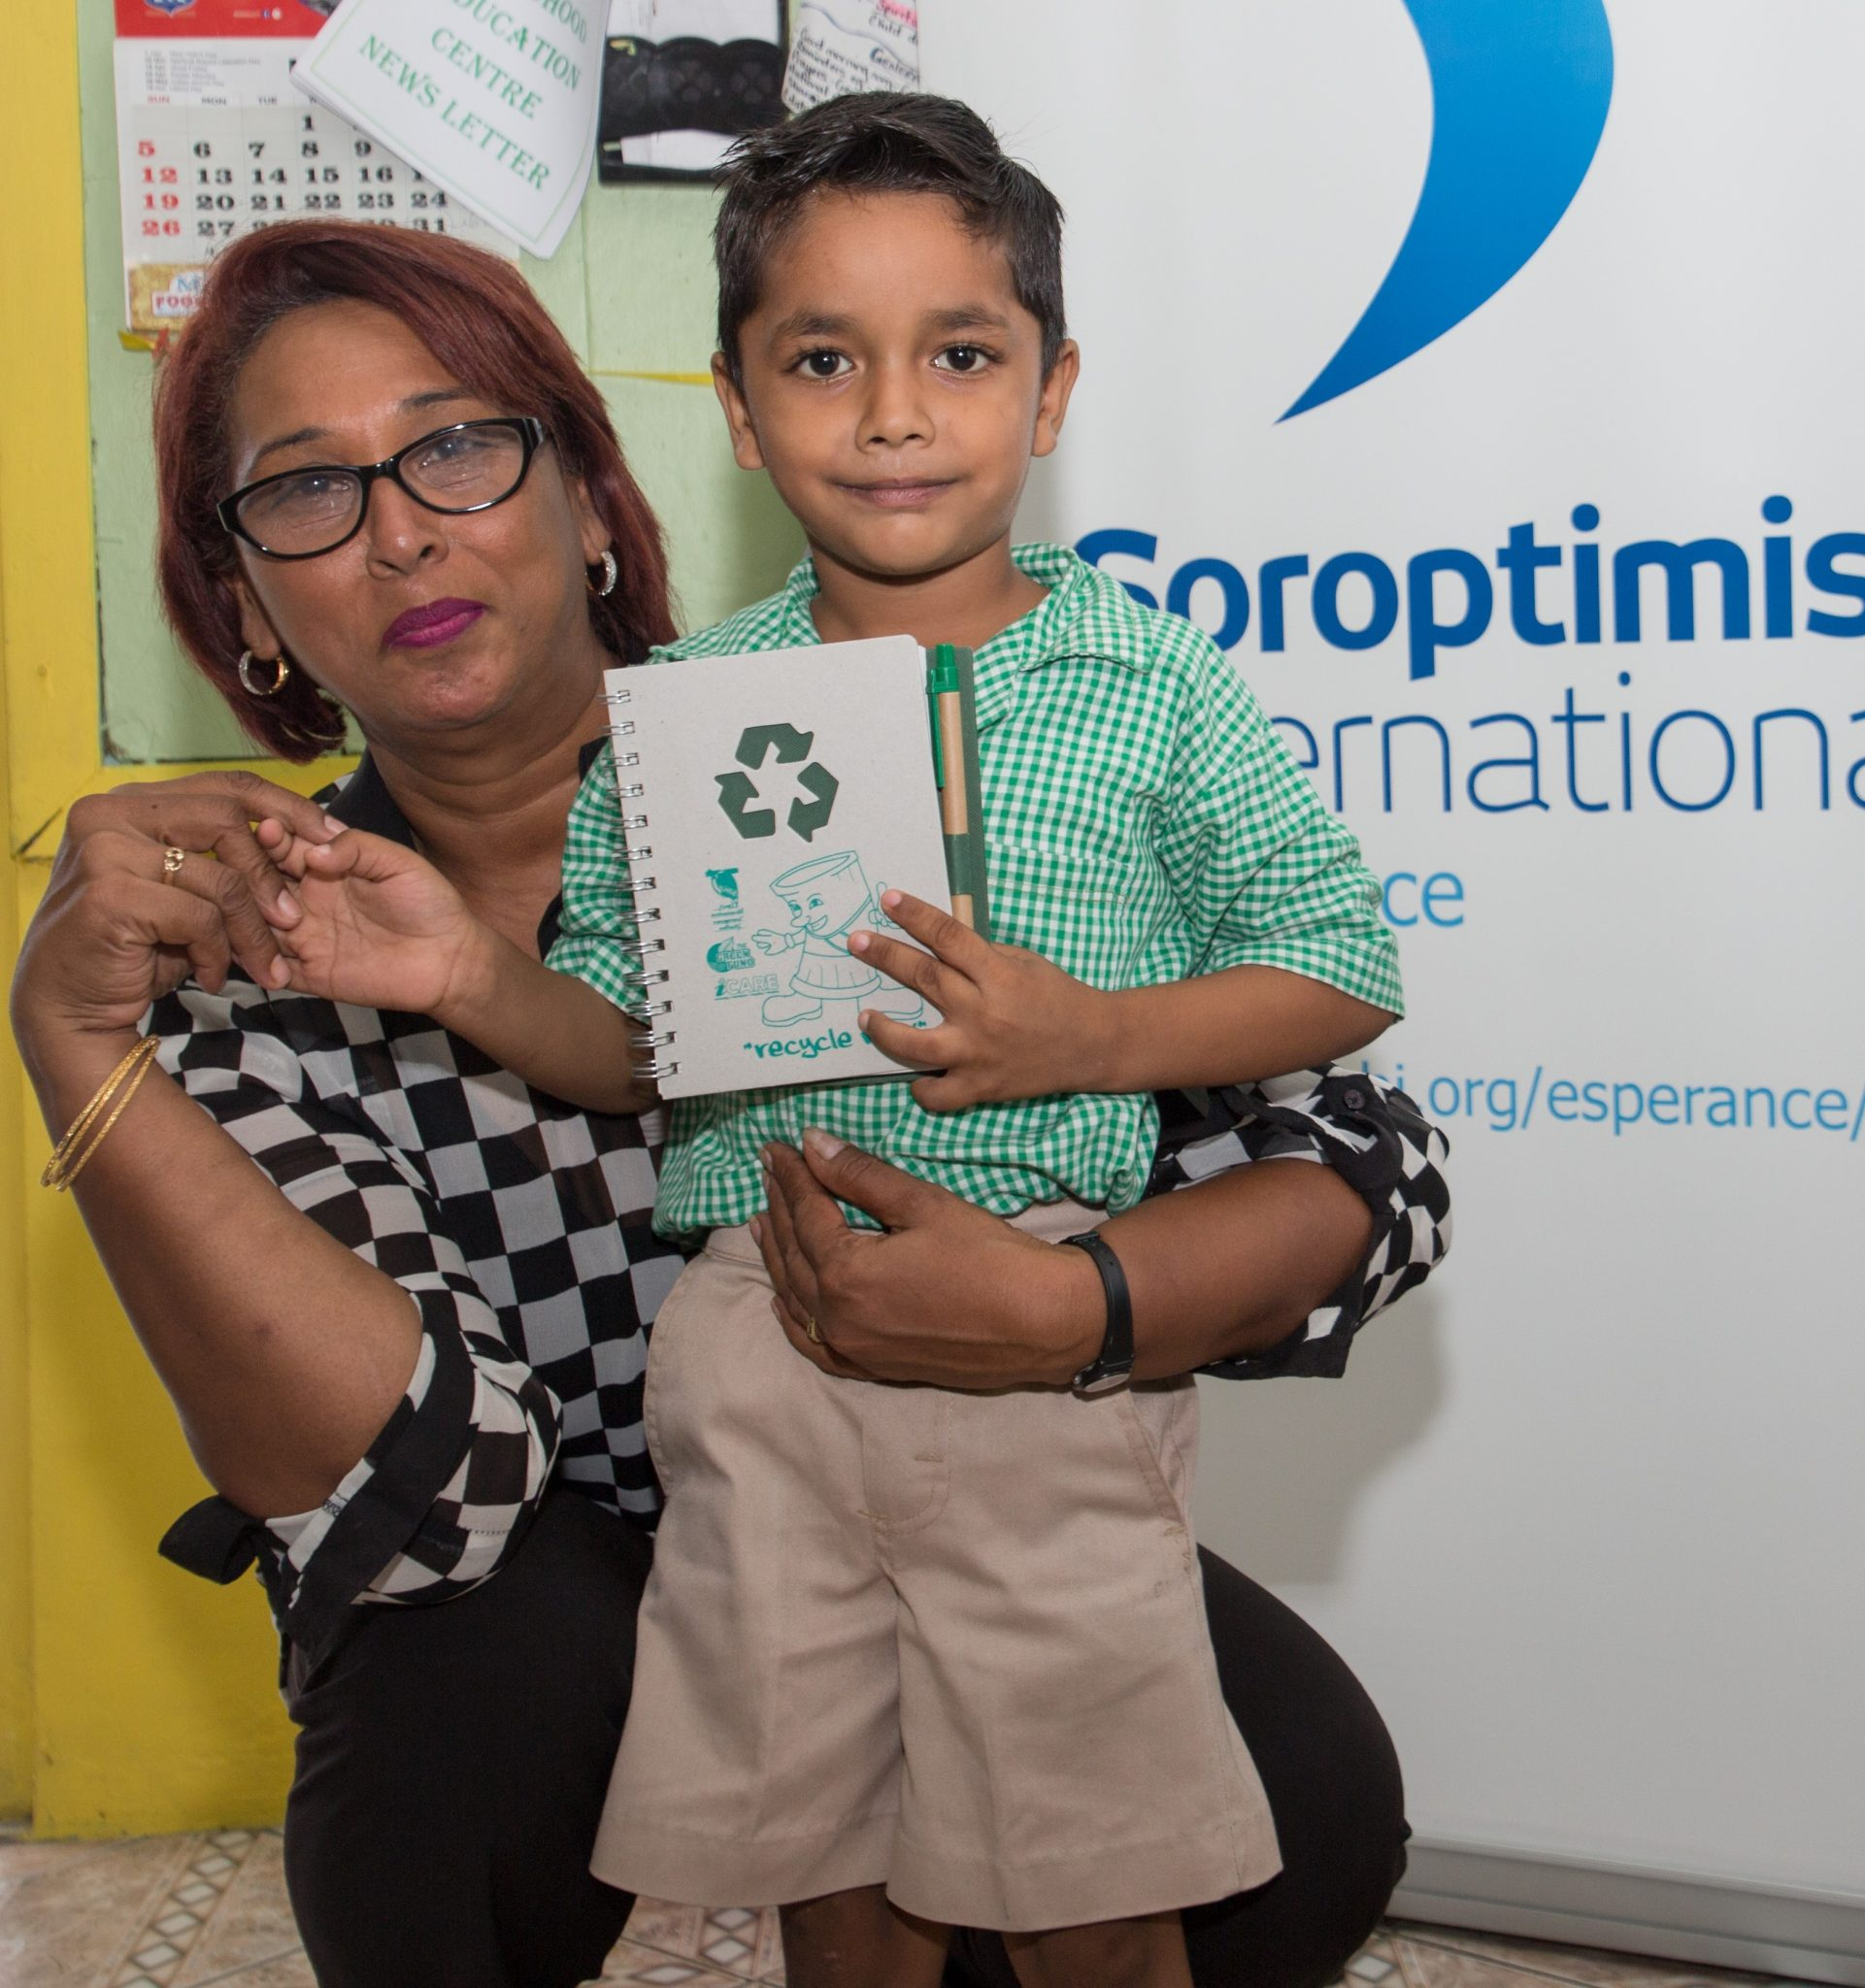 Principal Annie Rajkumar receives her Recycle Now notebook presented by her student.